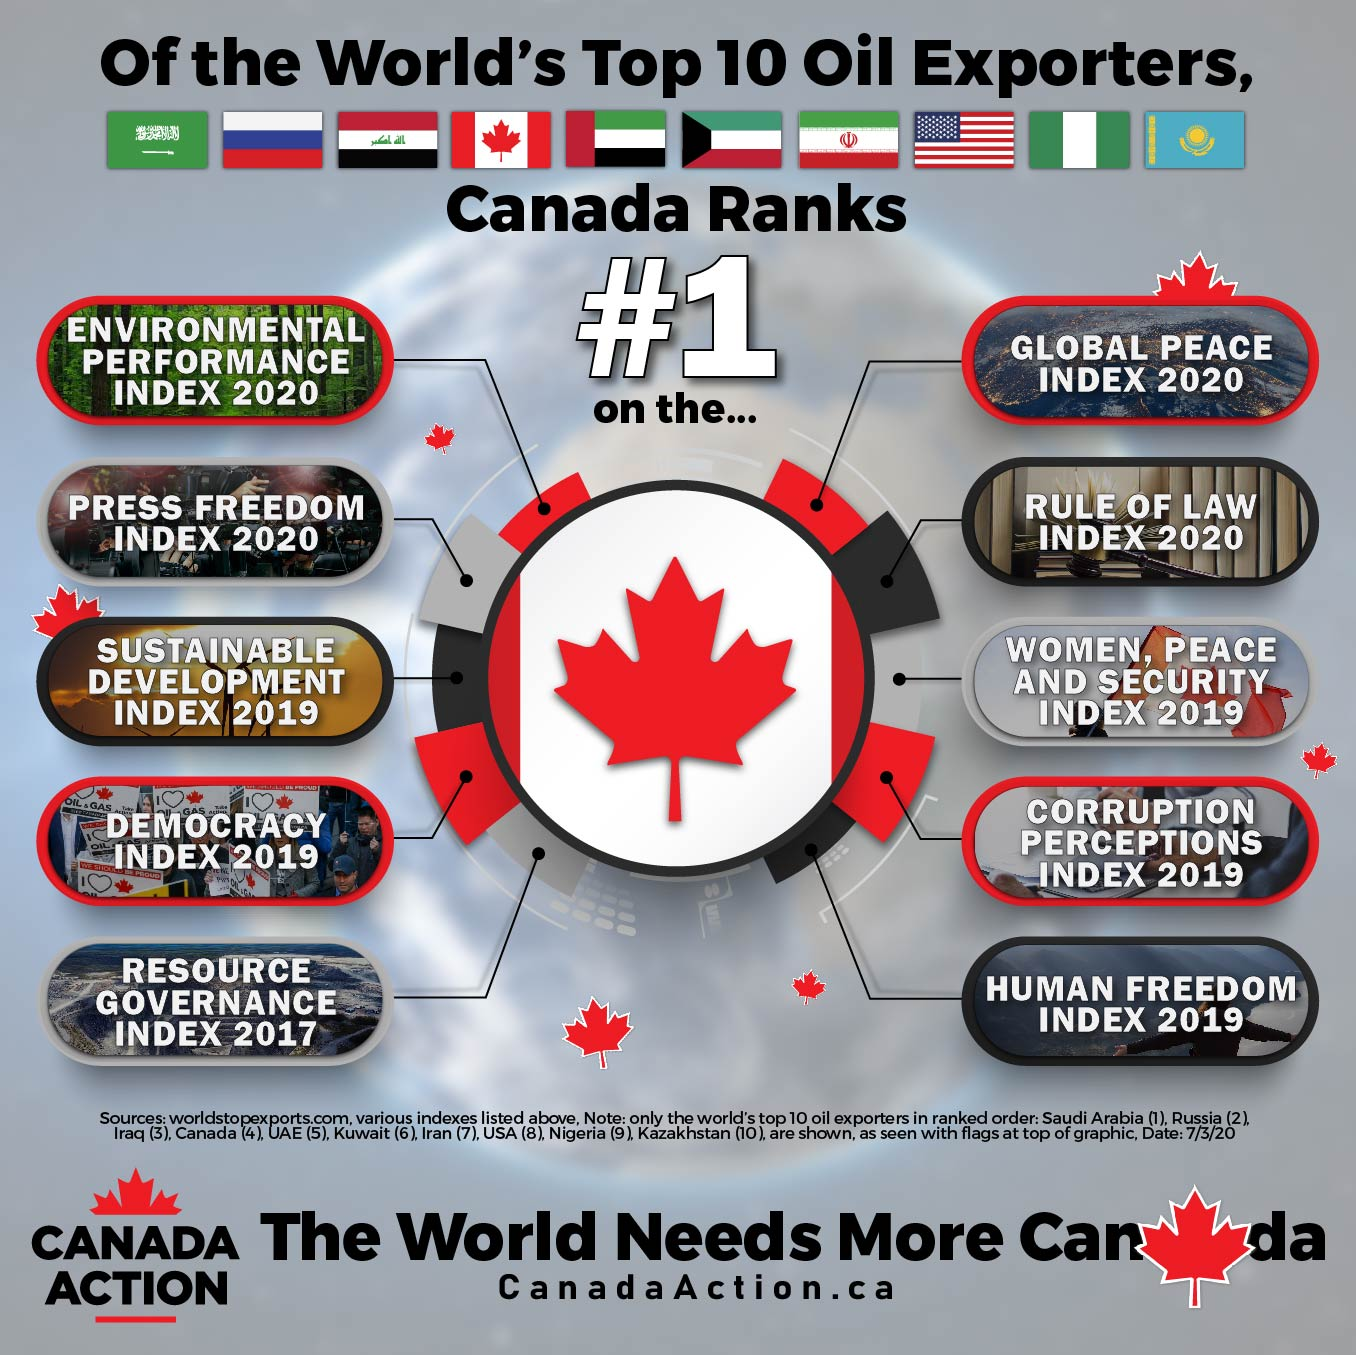 Canada Ranks 1st on ESG Metrics out of top 10 global oil exporters